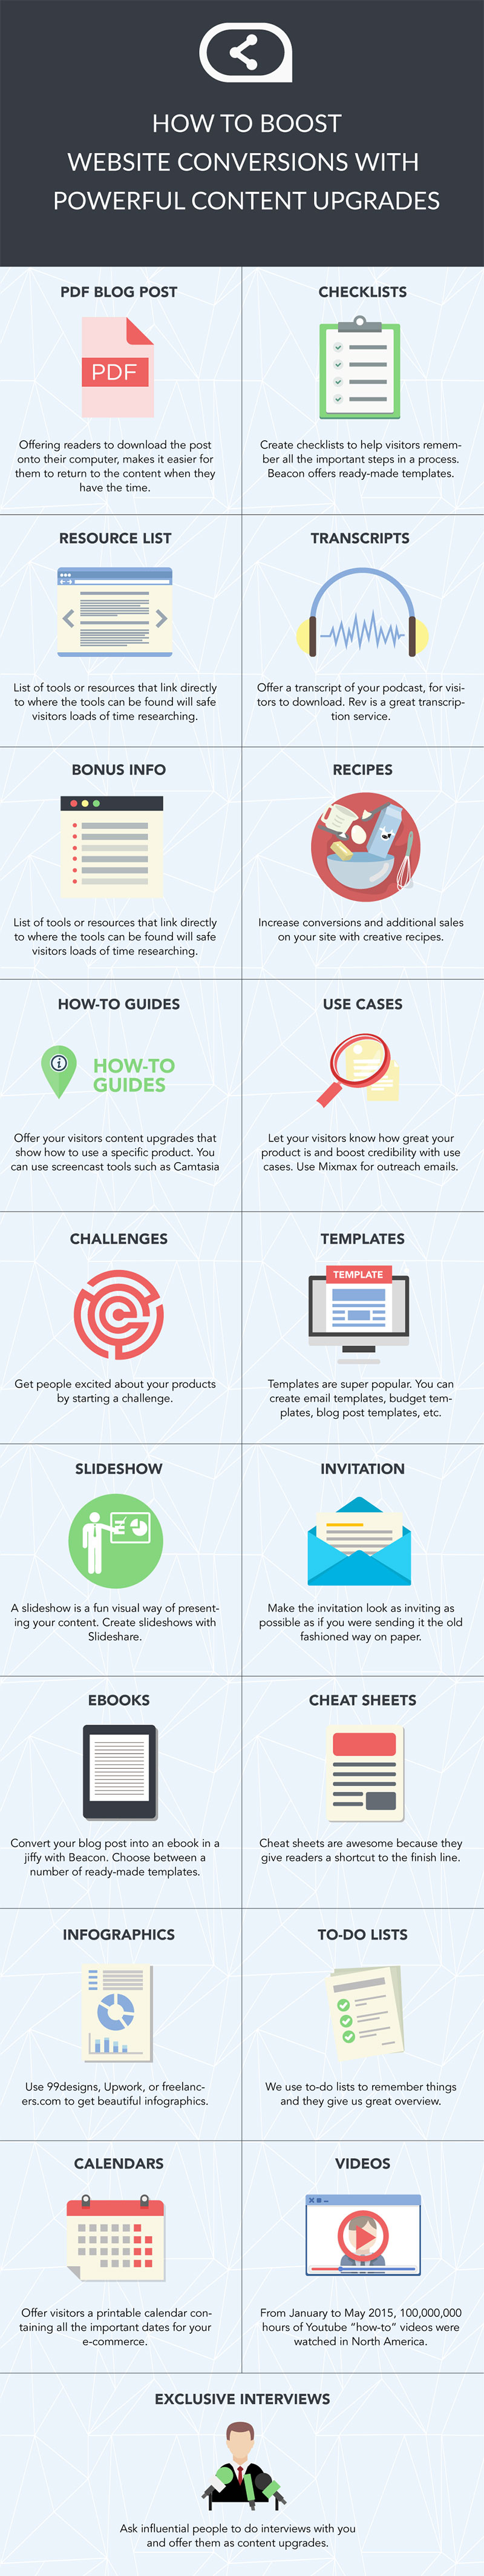 17 Brilliant Ways To Enhance Your Website Conversions